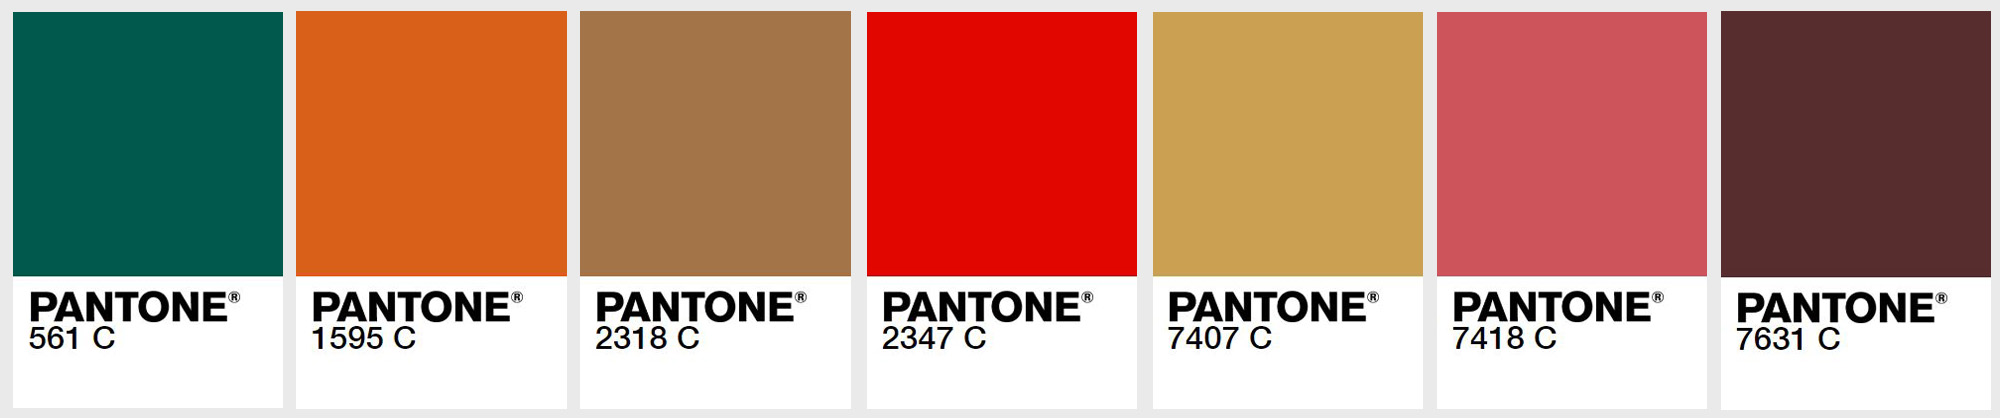 Irnham_Hall_Pantone_Colours